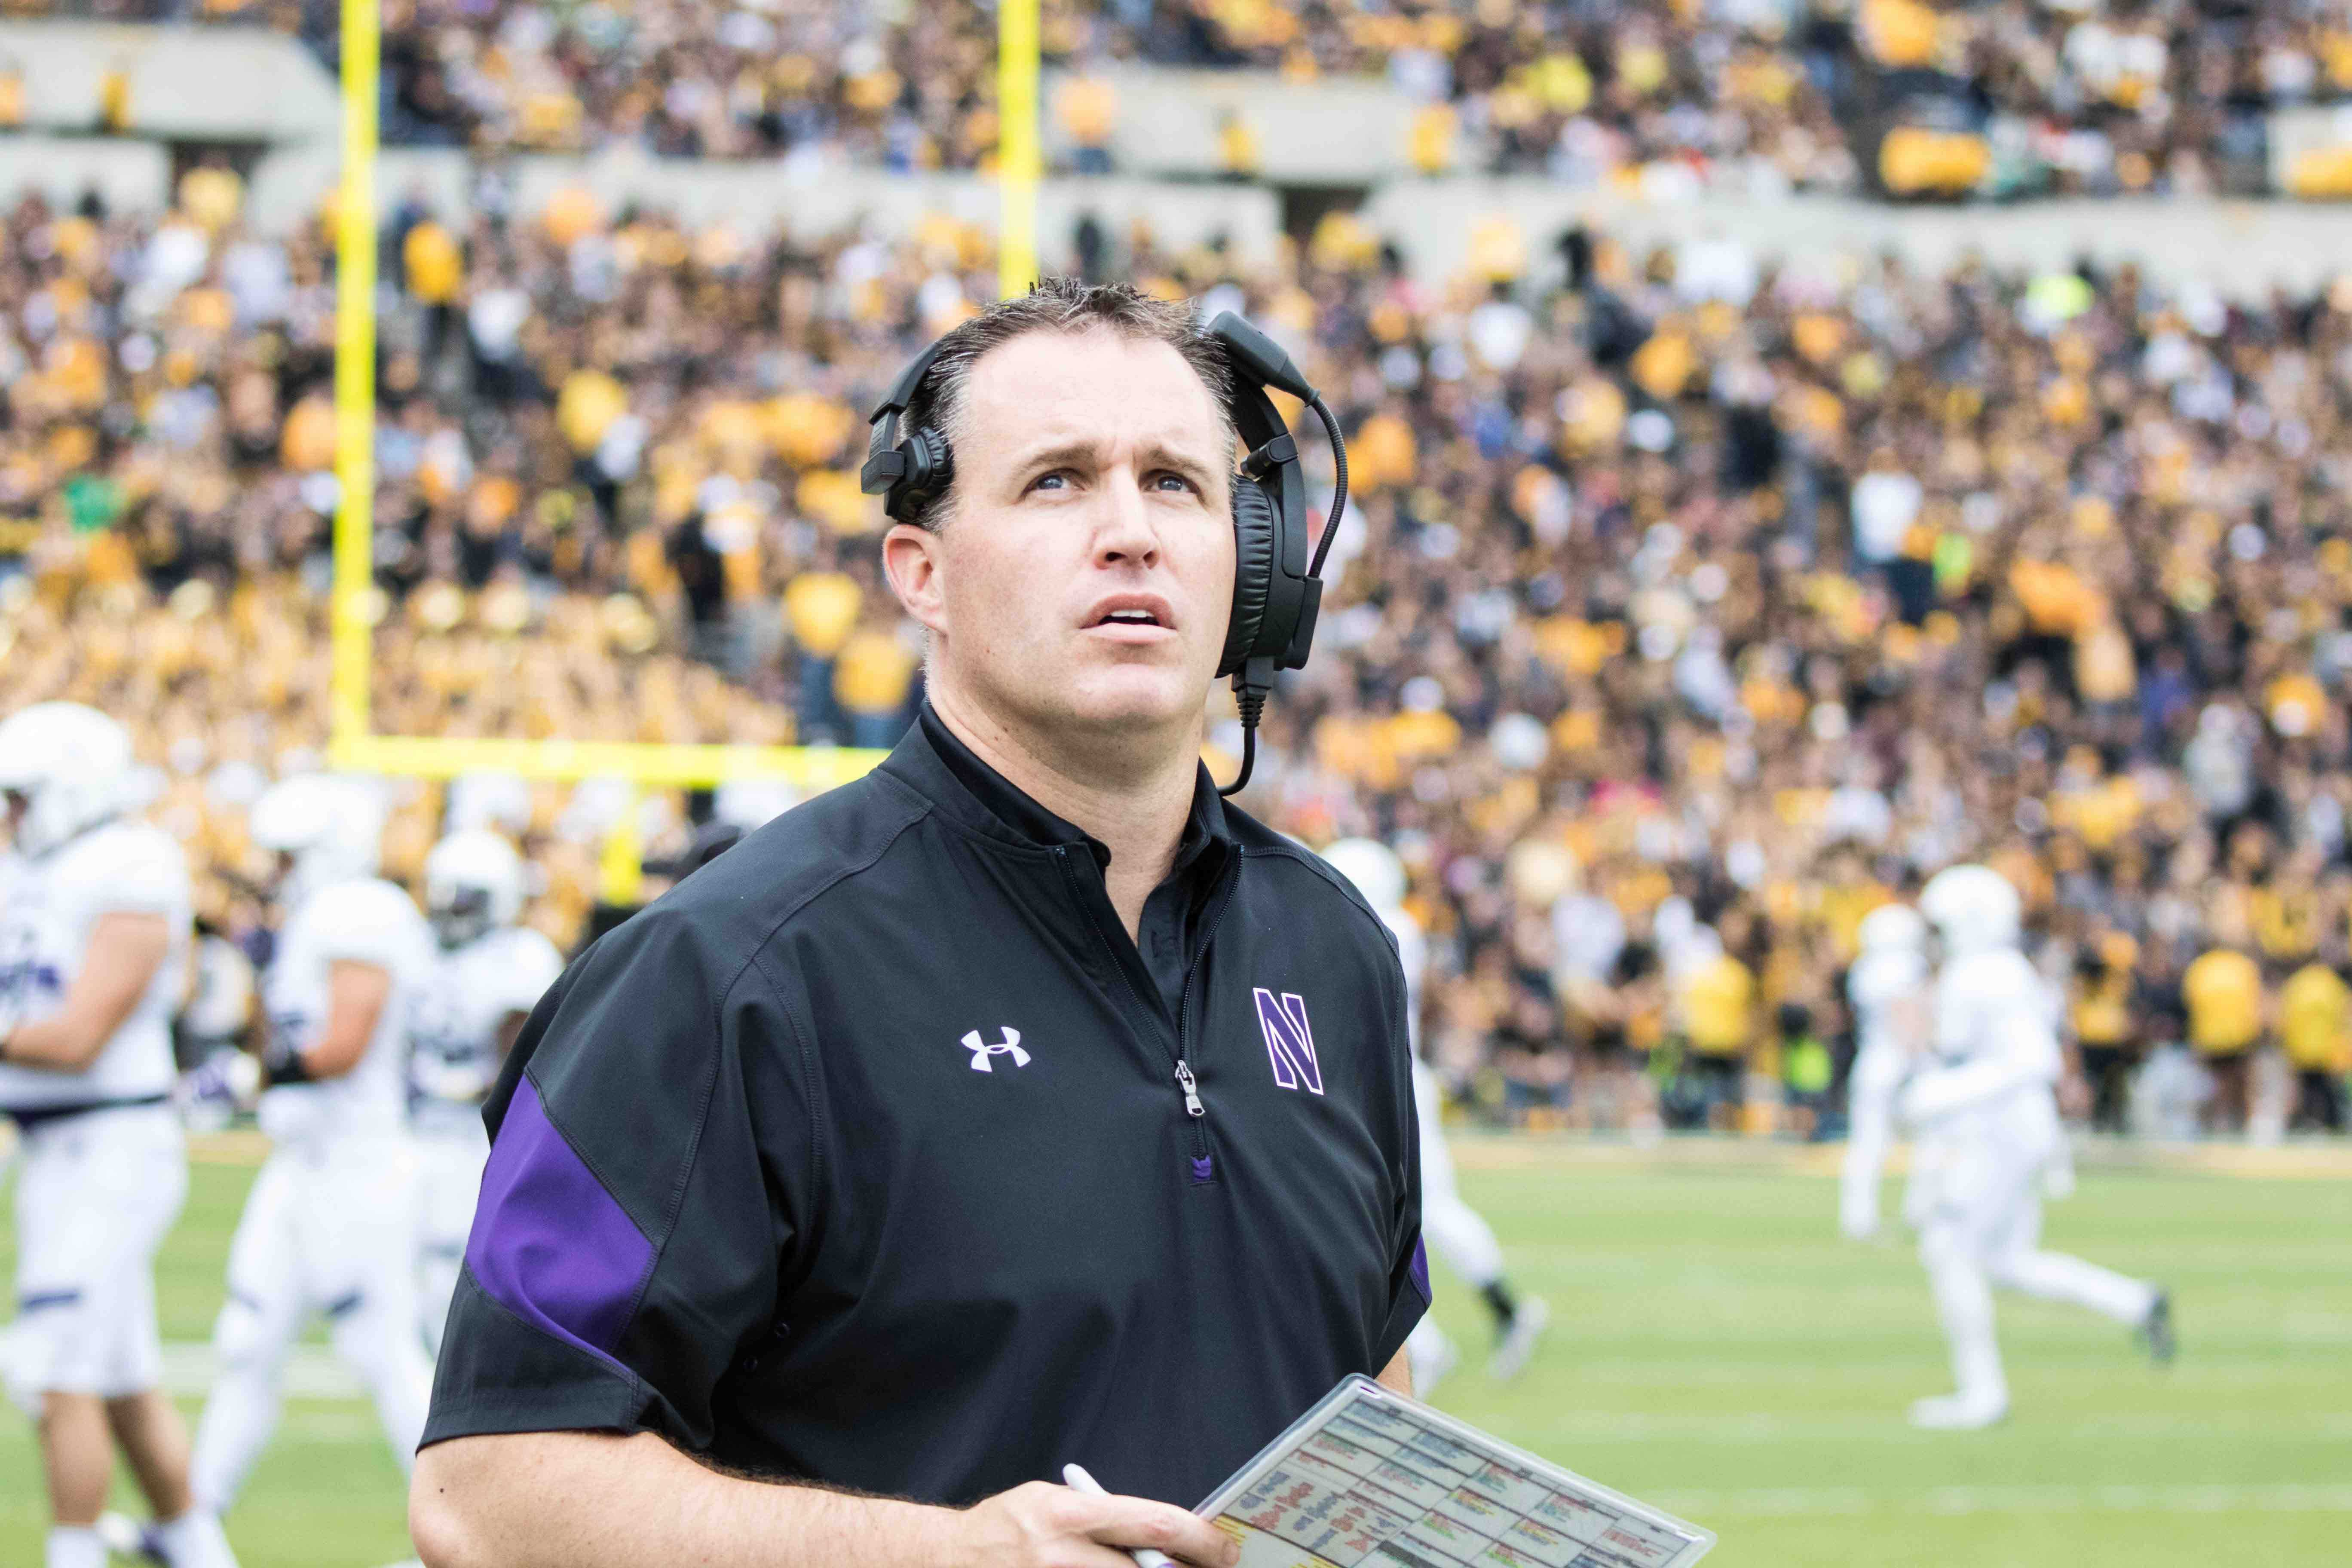 Coach Pat Fitzgerald looks up during Northwestern's Oct. 1 game at Iowa. The team's football handbook rules were previously